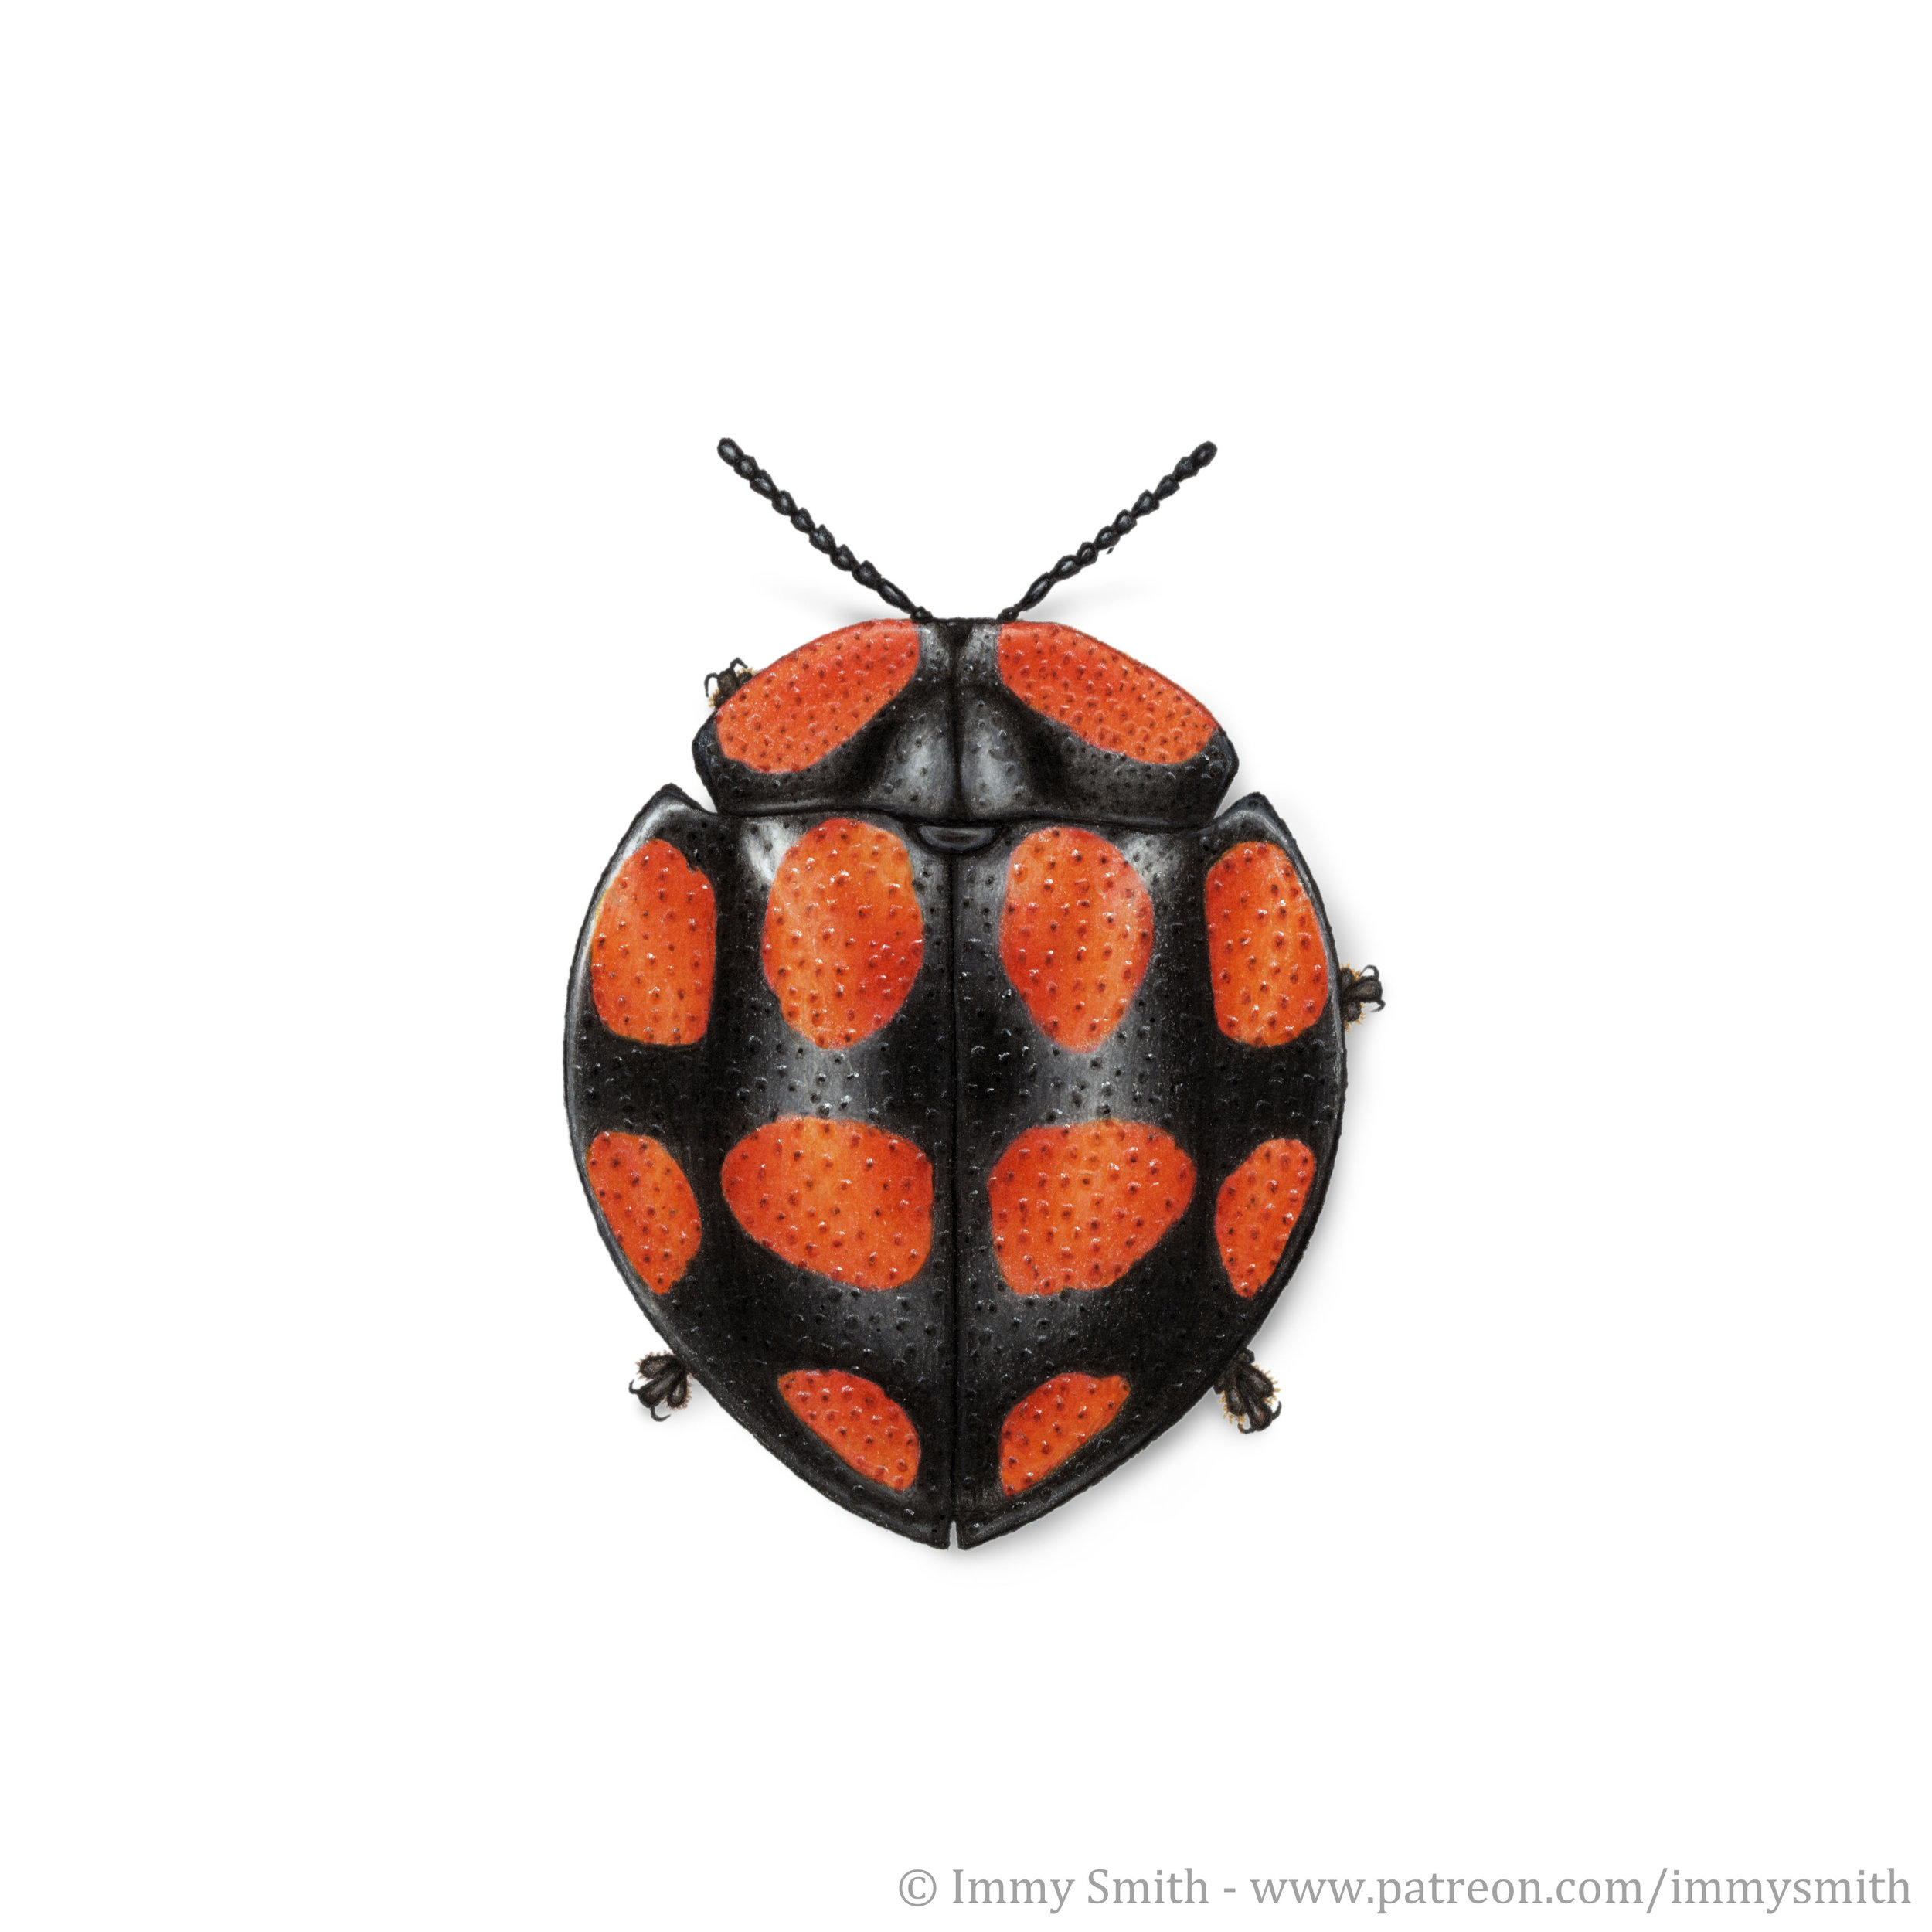 Image description; a black red-spotted tortoise beetle in the genus  Botanochara , drawn in colour pencil.